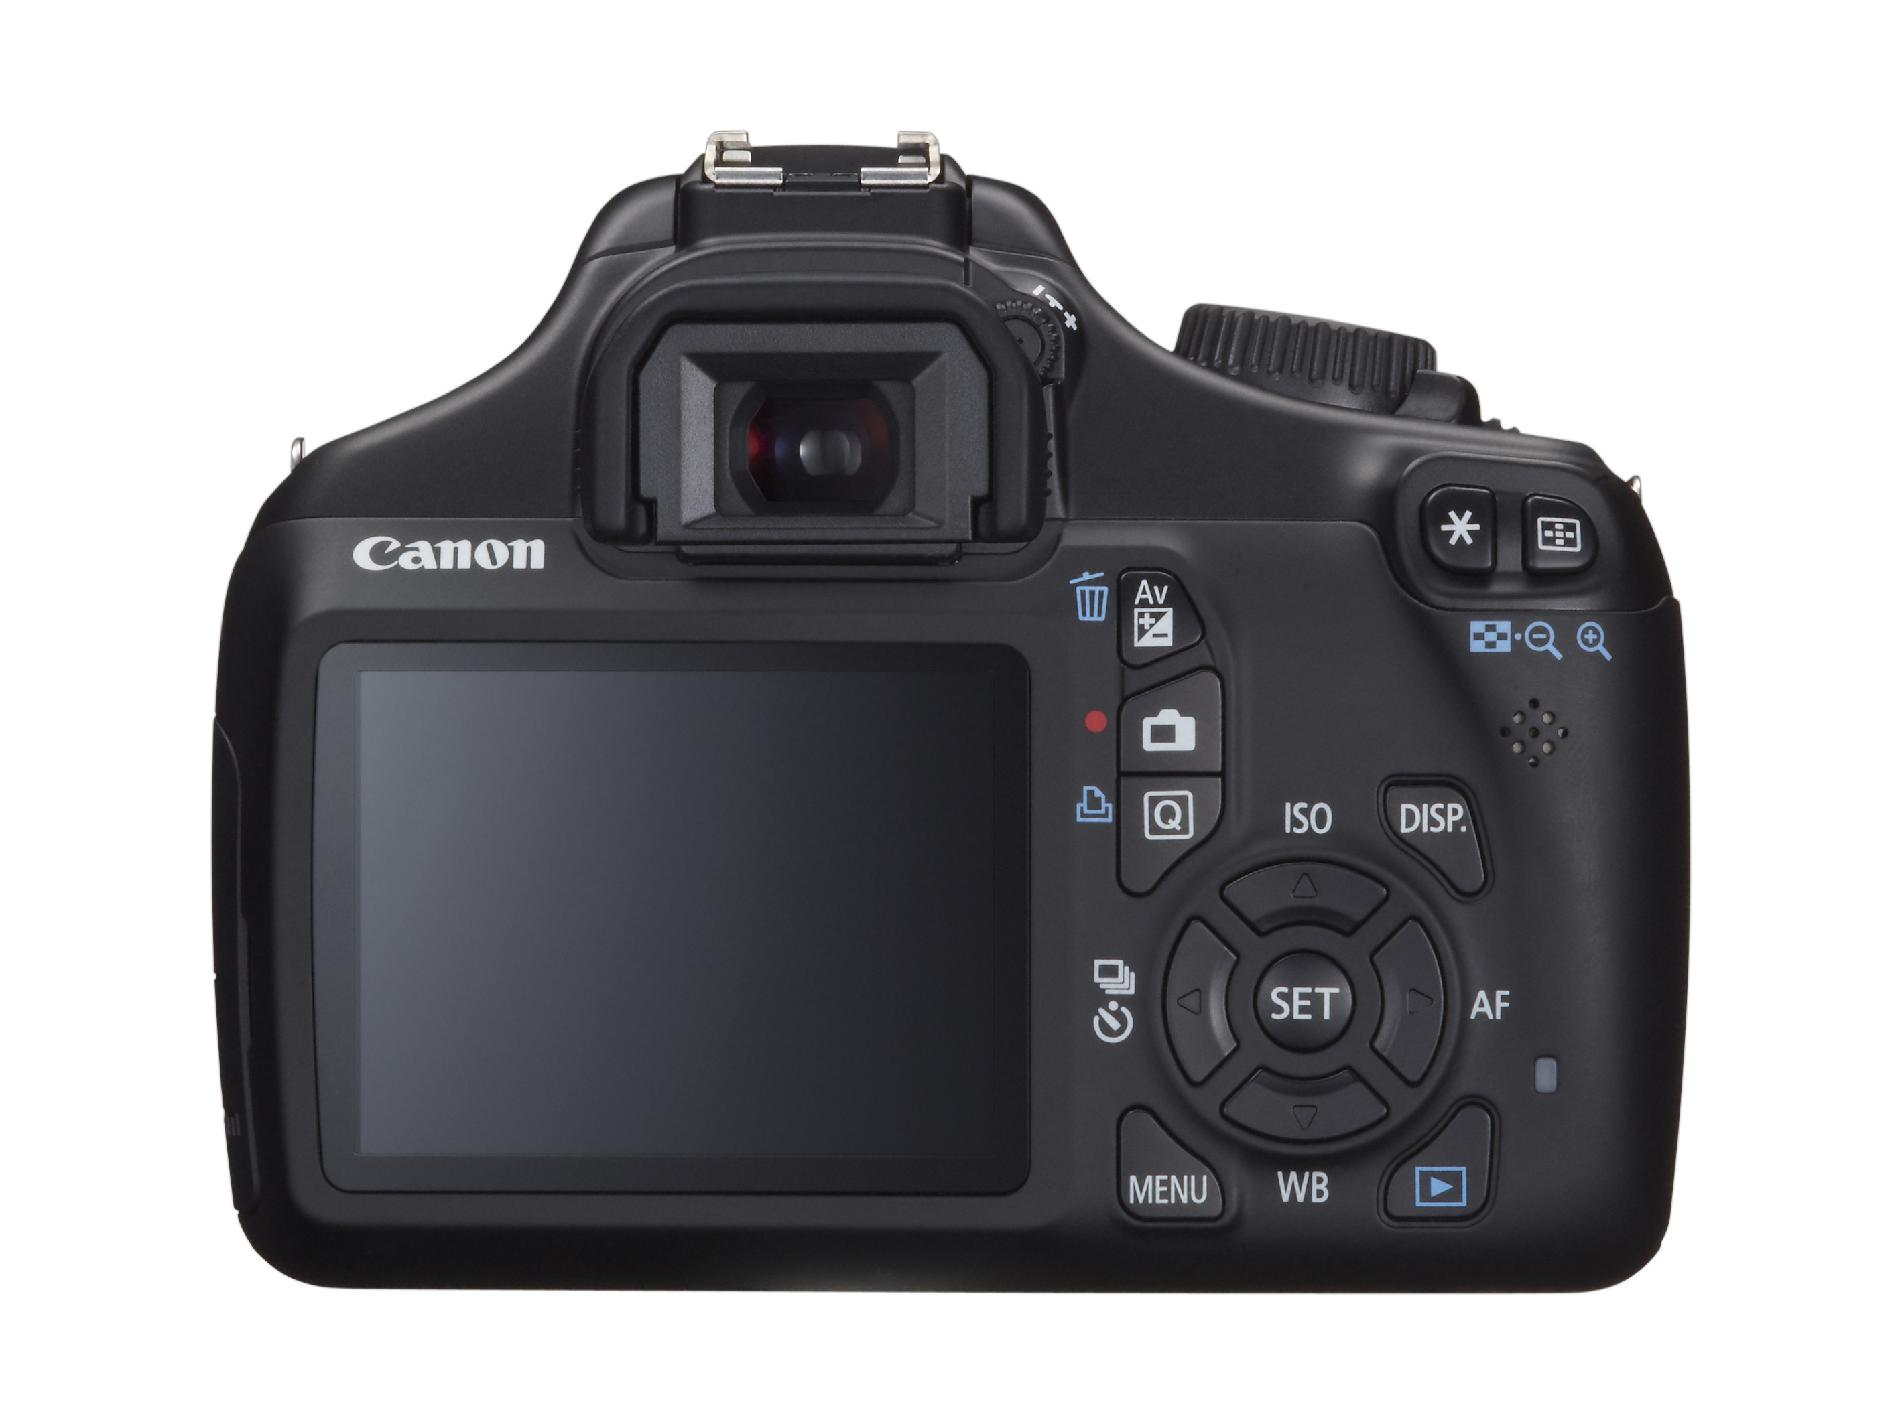 Canon 12.2-Megapixel EOS Rebel T3 Digital SLR Camera with 18-55mm Lens